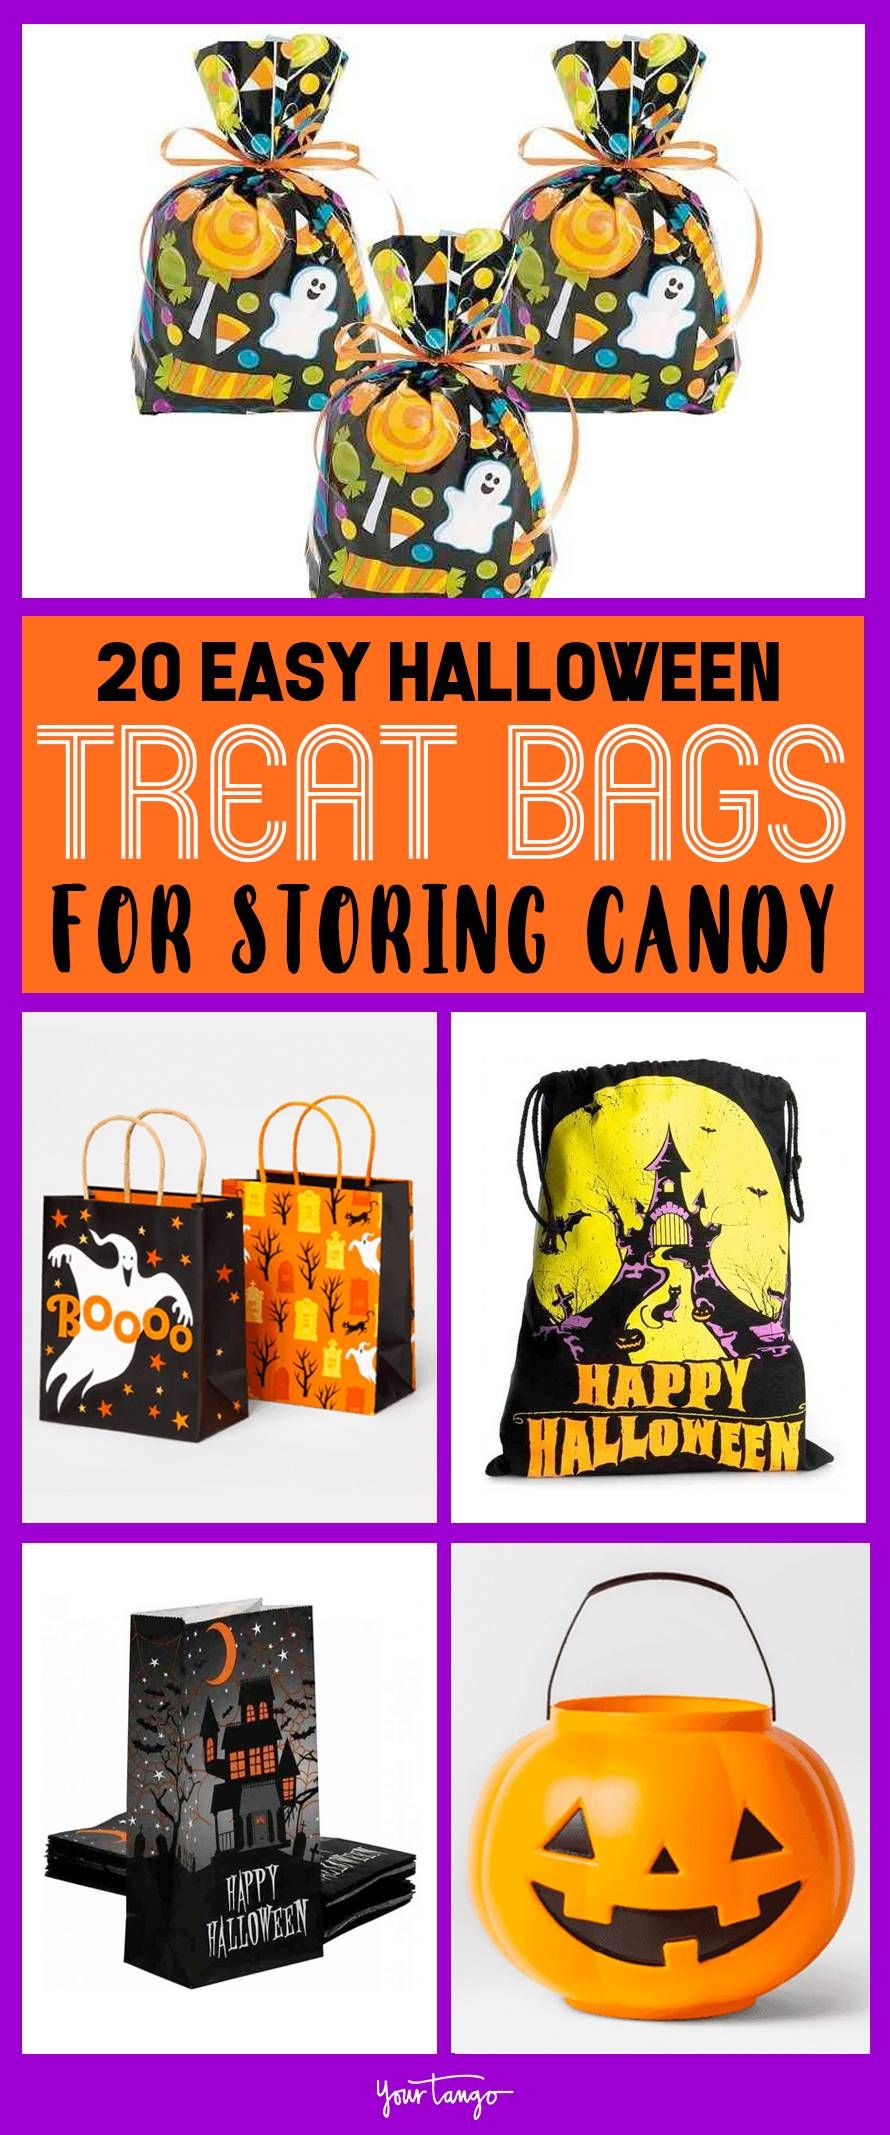 20 Easy Halloween Treat Bag Ideas To Store Candy